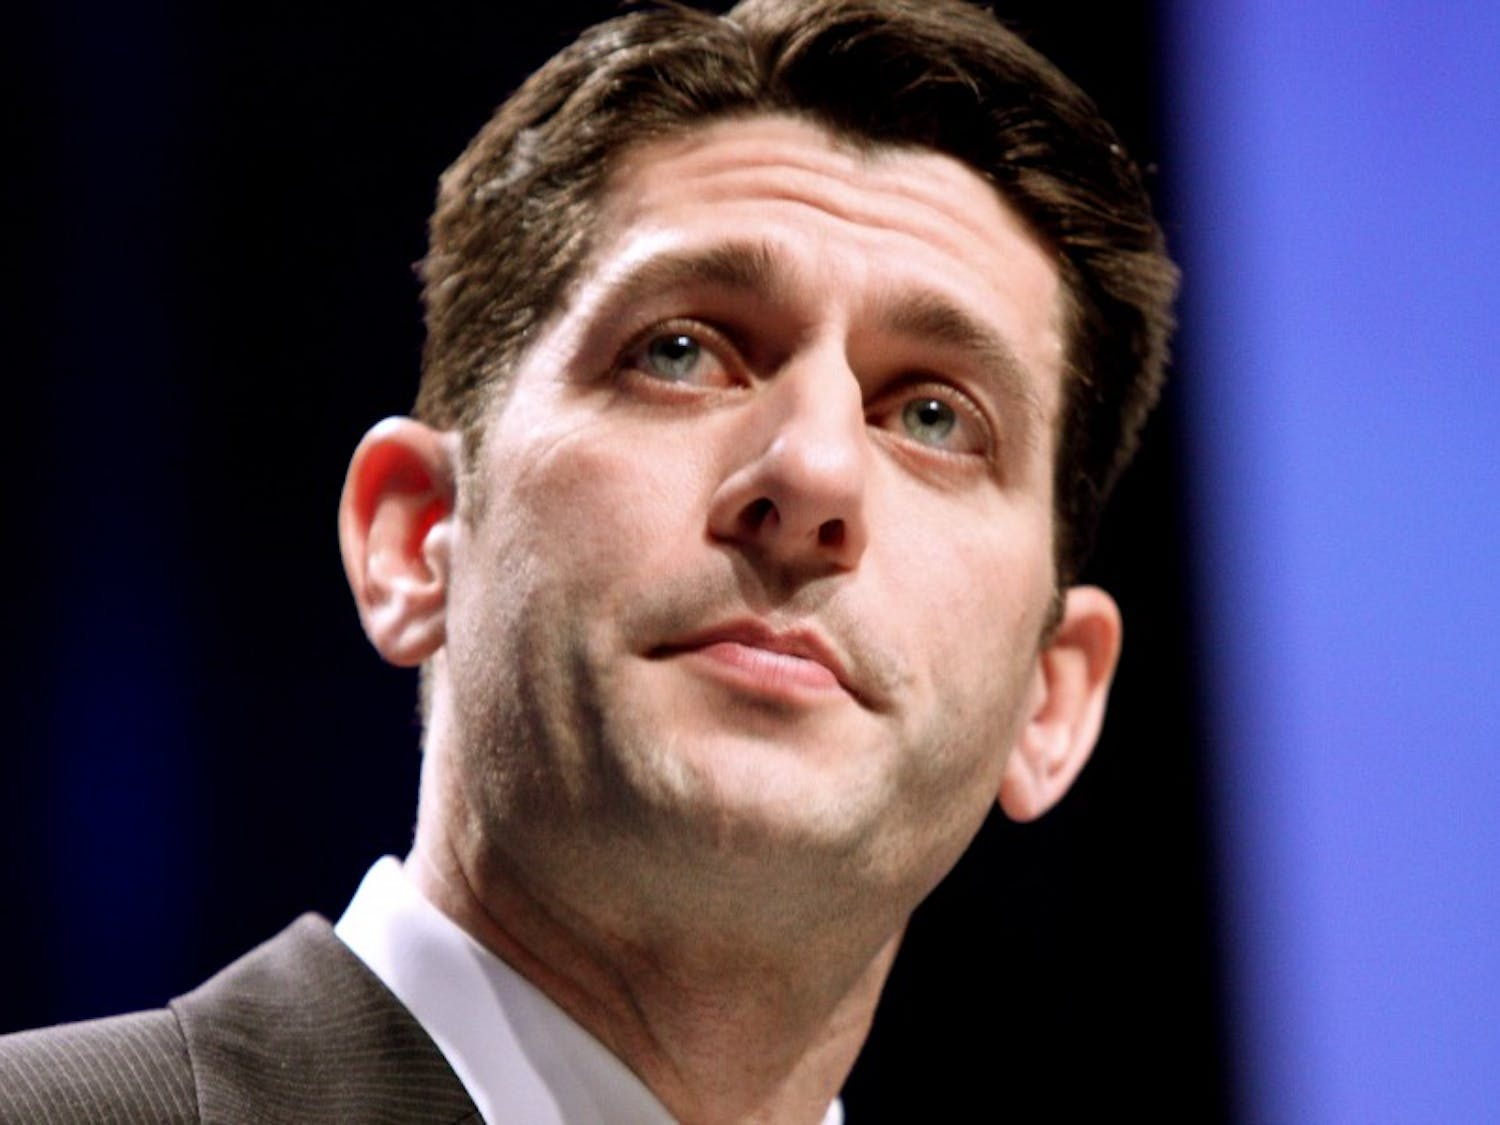 House Speaker Paul Ryan announced Monday he will not continue to defend Republican nominee Donald Trump.